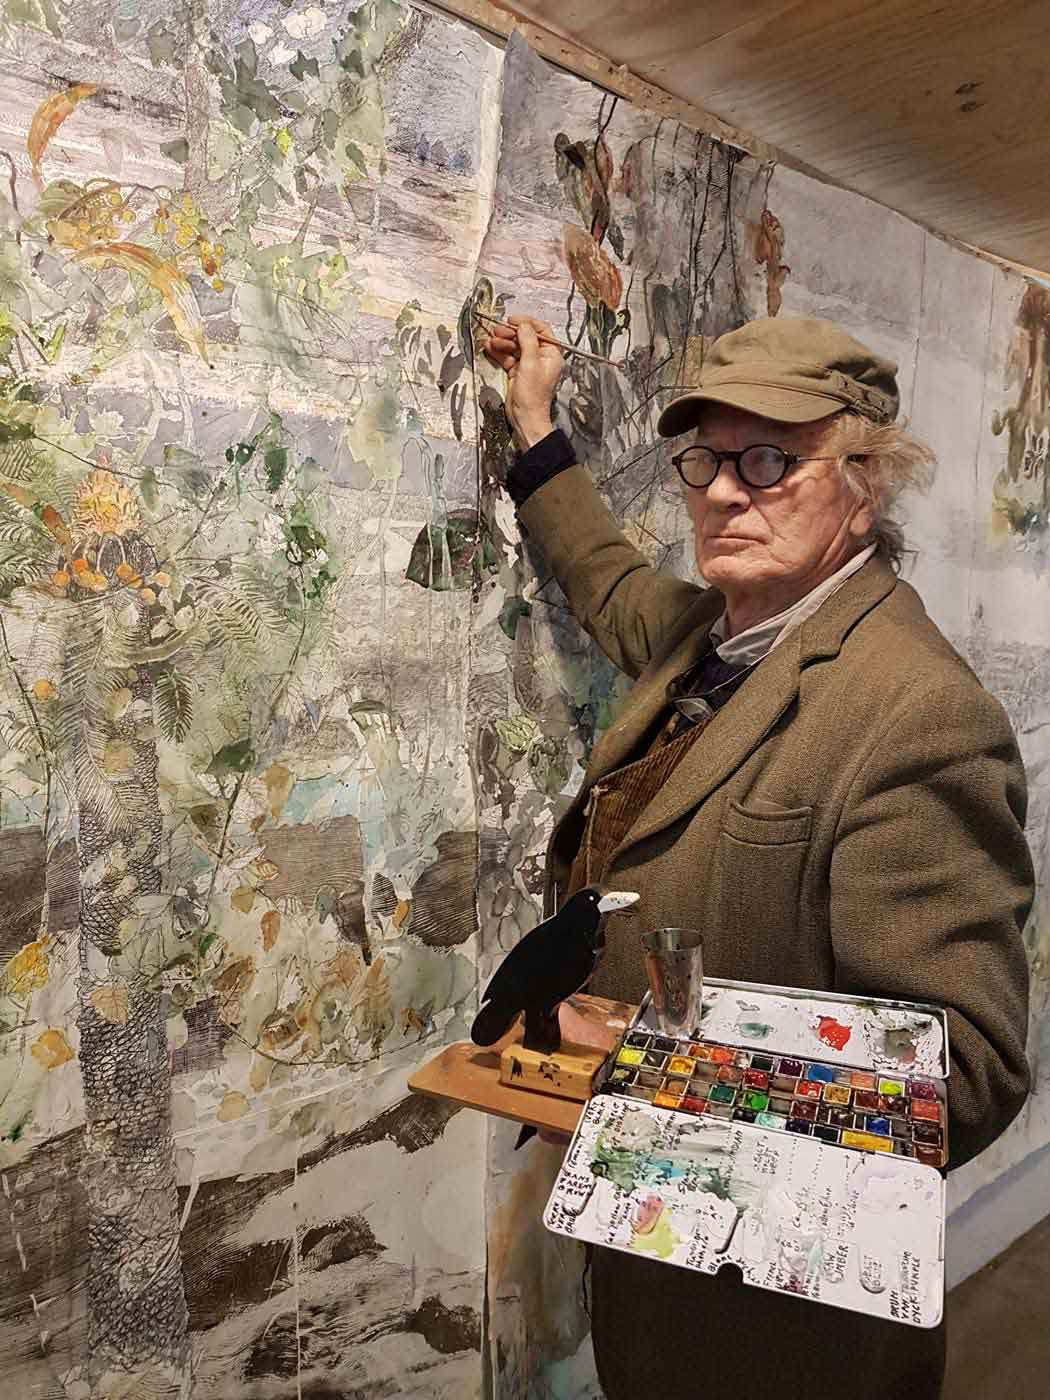 The artist stands in front of a large artwork with his brush raised to the paper and a palette in the other hand.